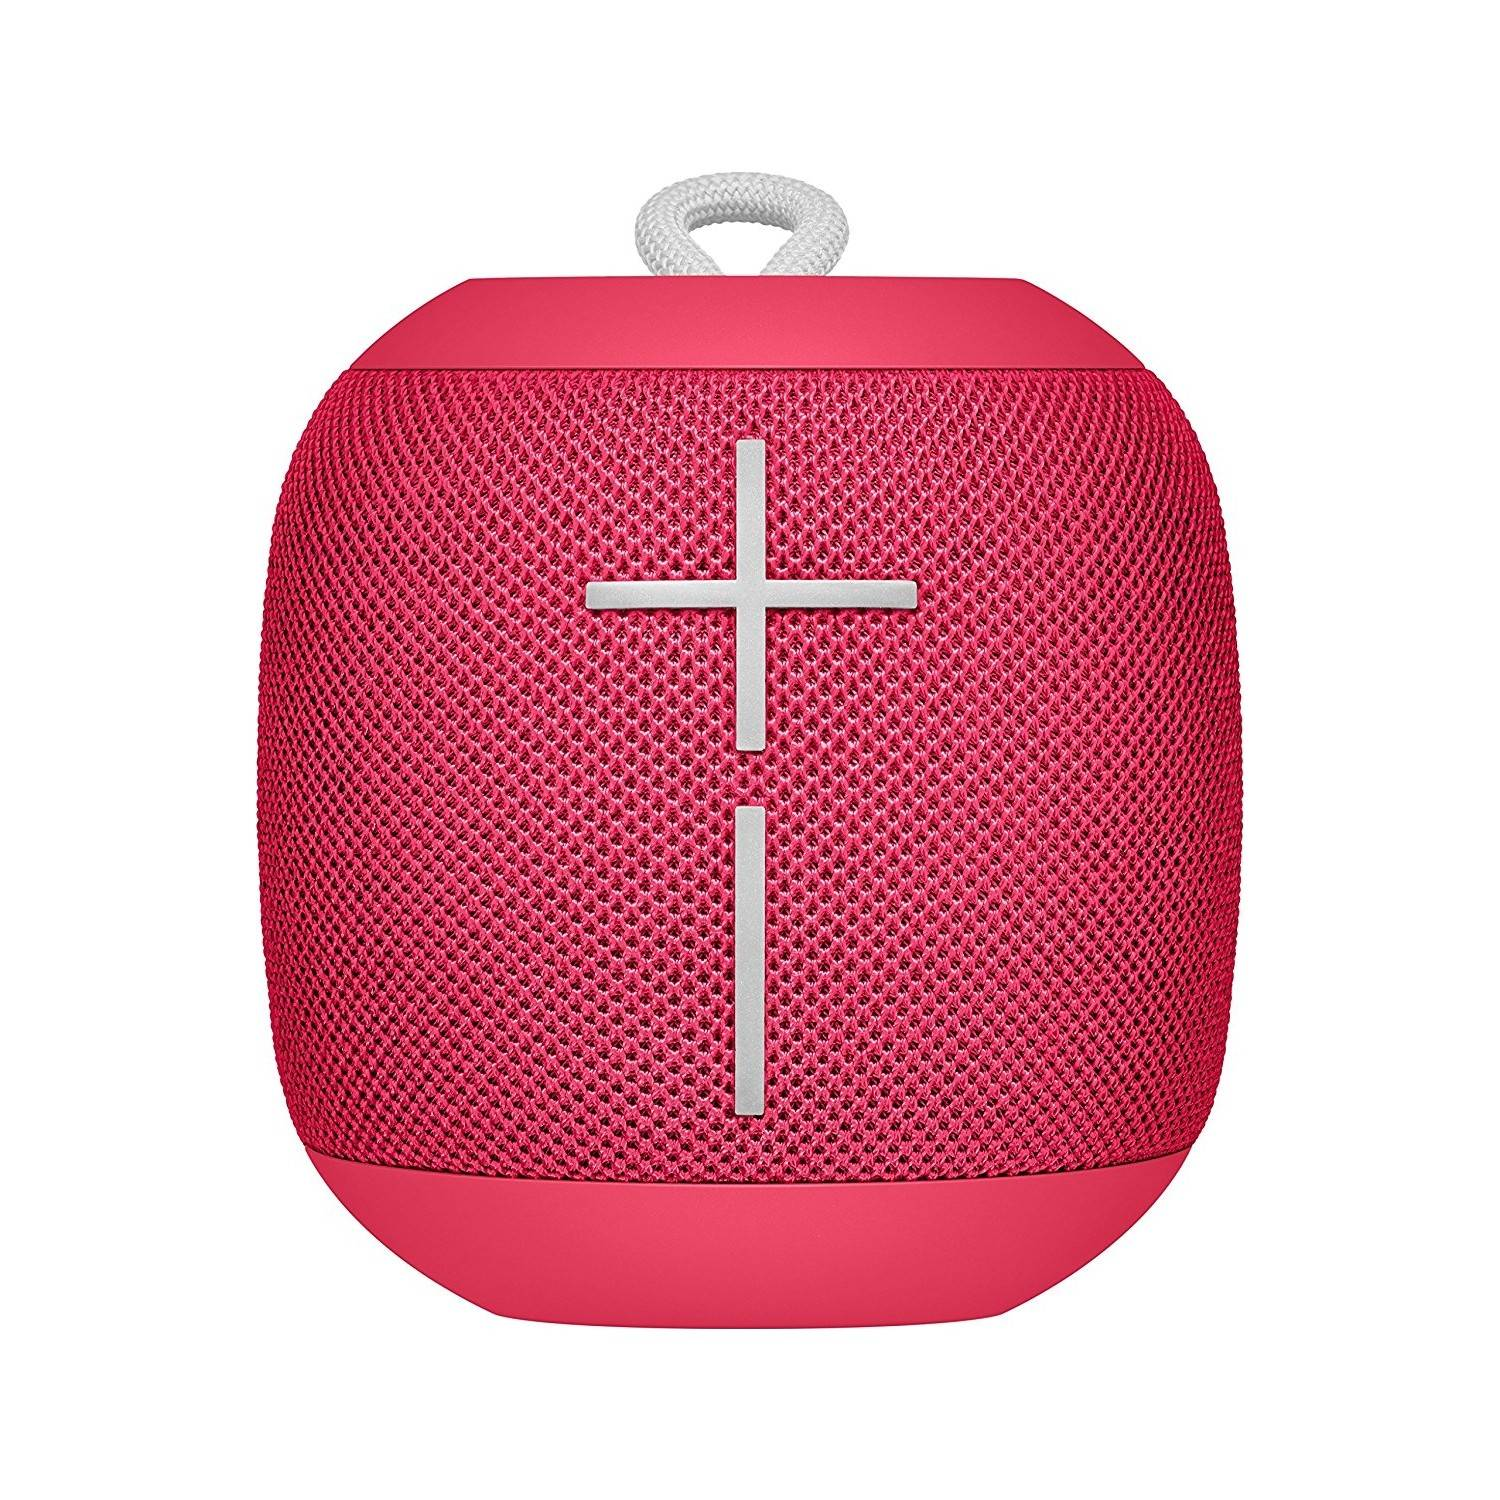 Logitech LIGITECH WL SPEAKER WONDERBOOM